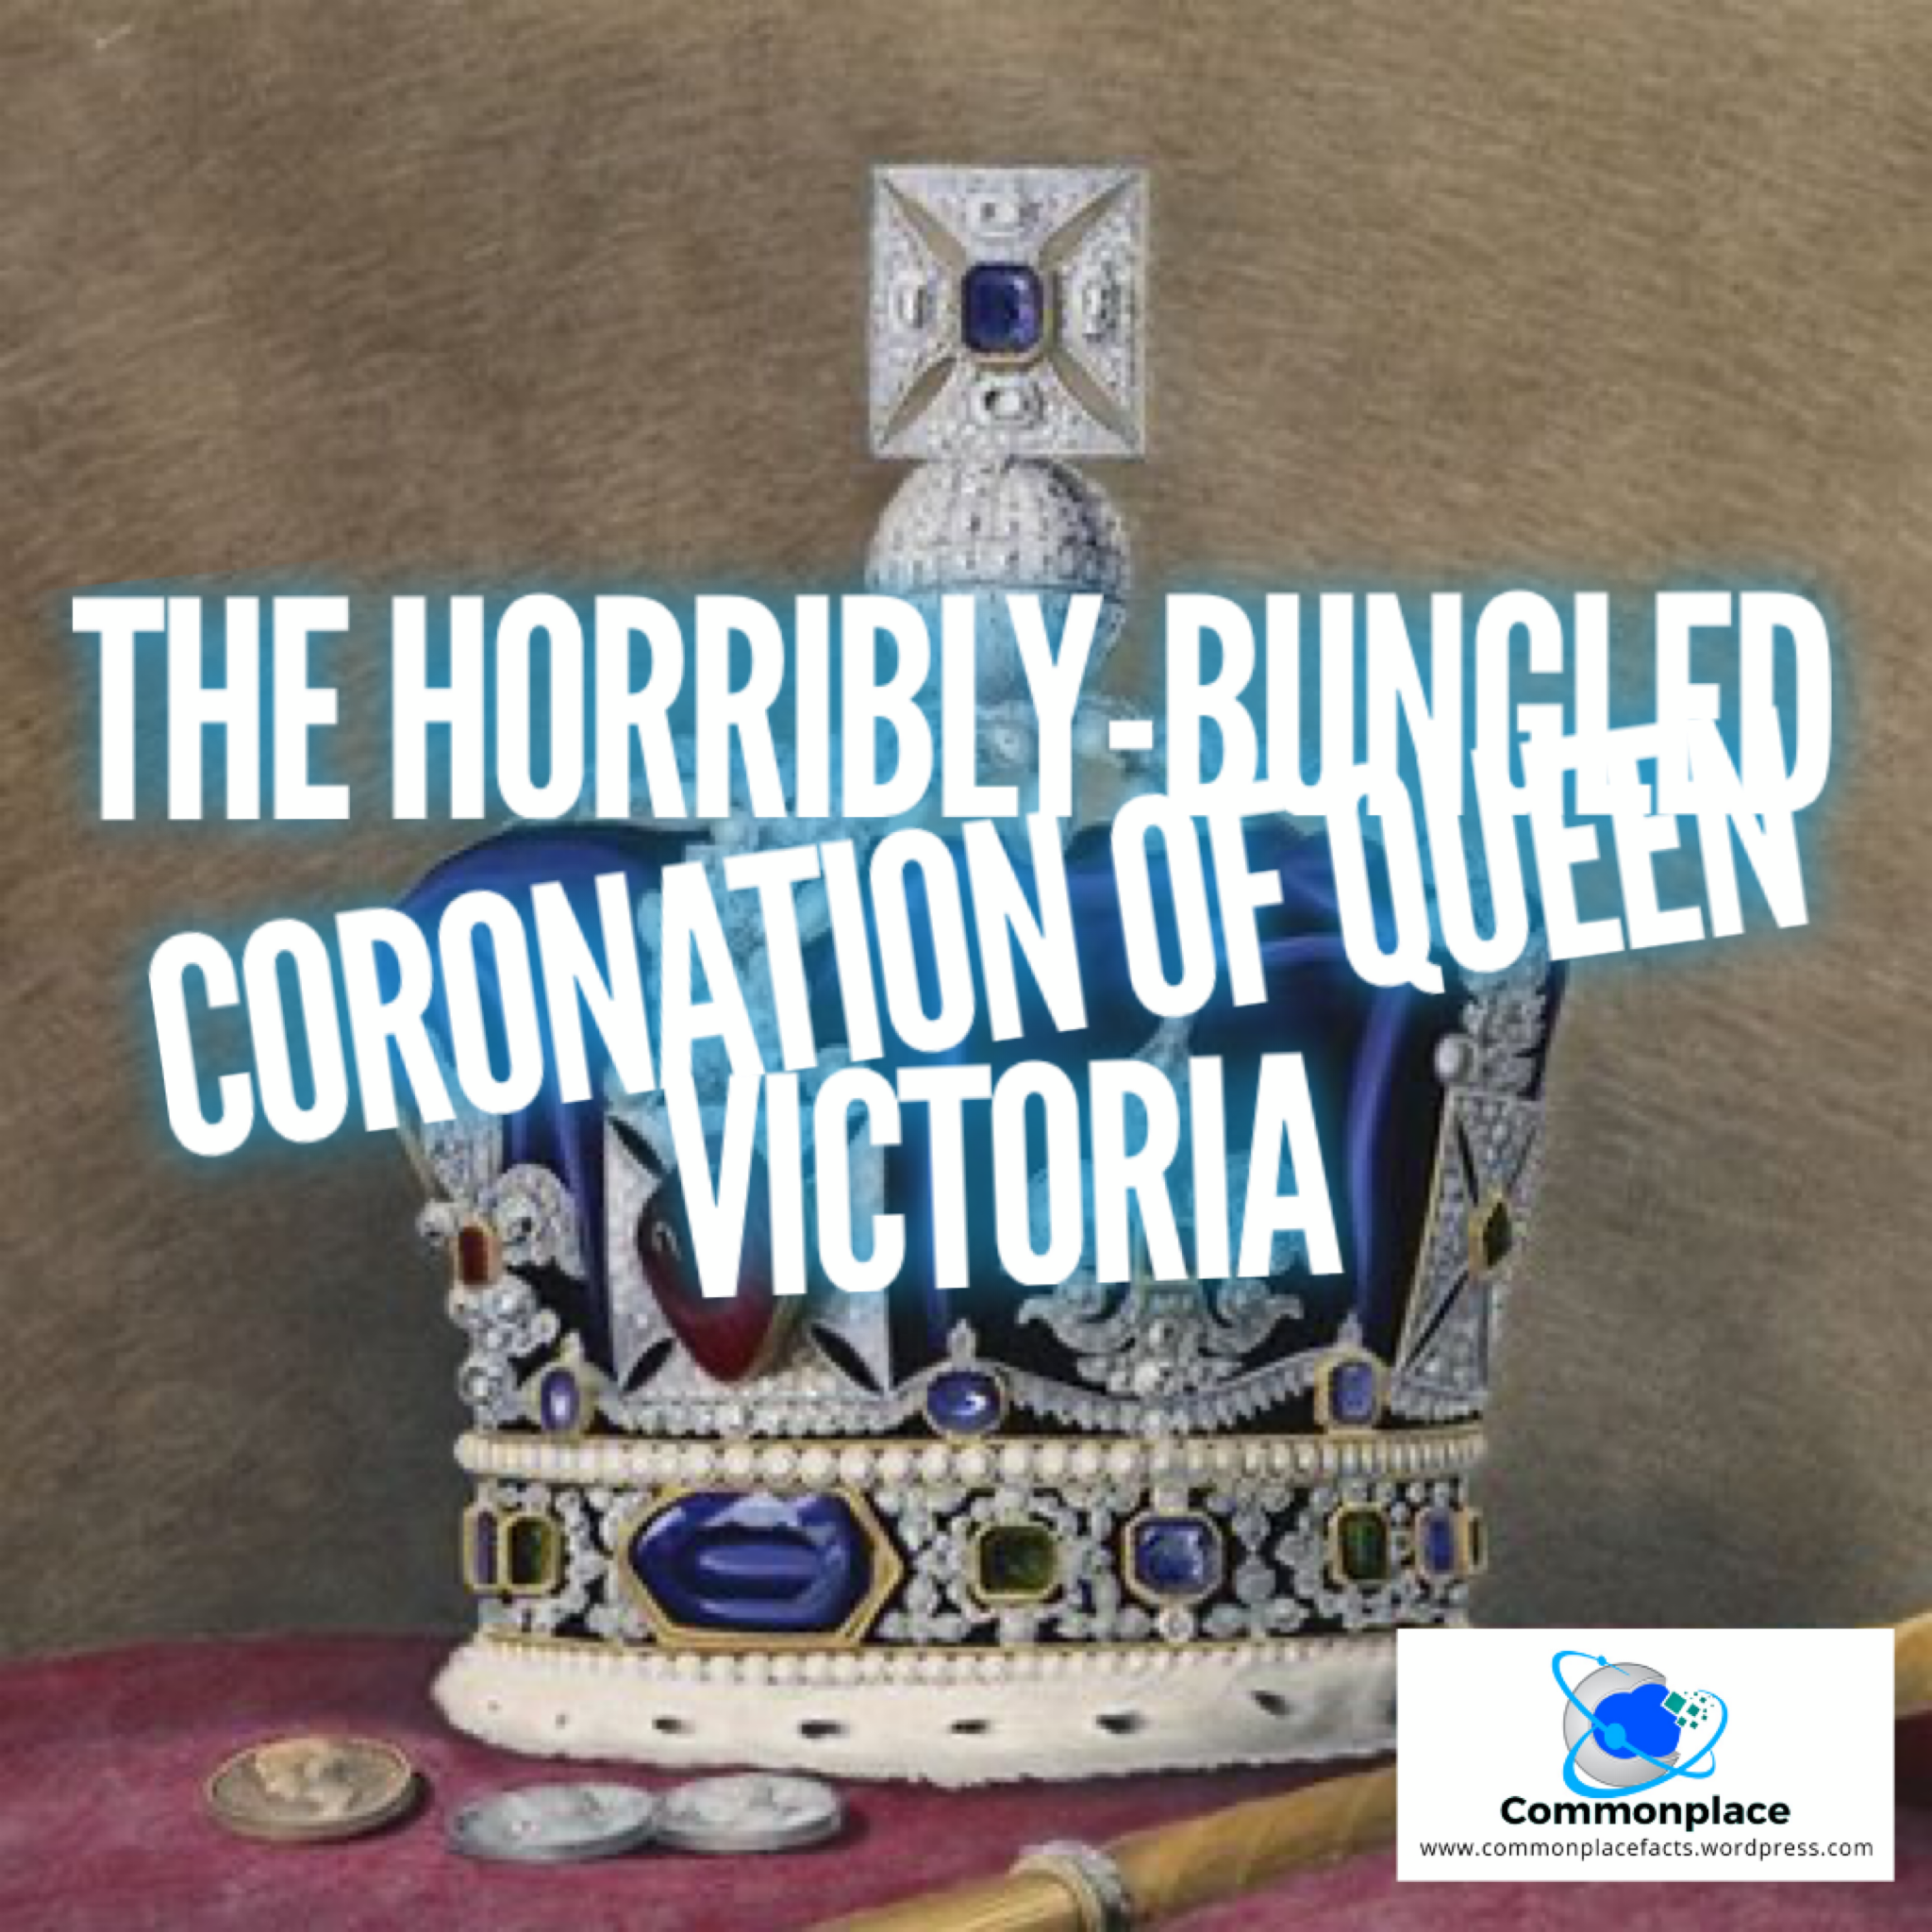 #royalty #QueenVictoria #Coronation #history #mistakes